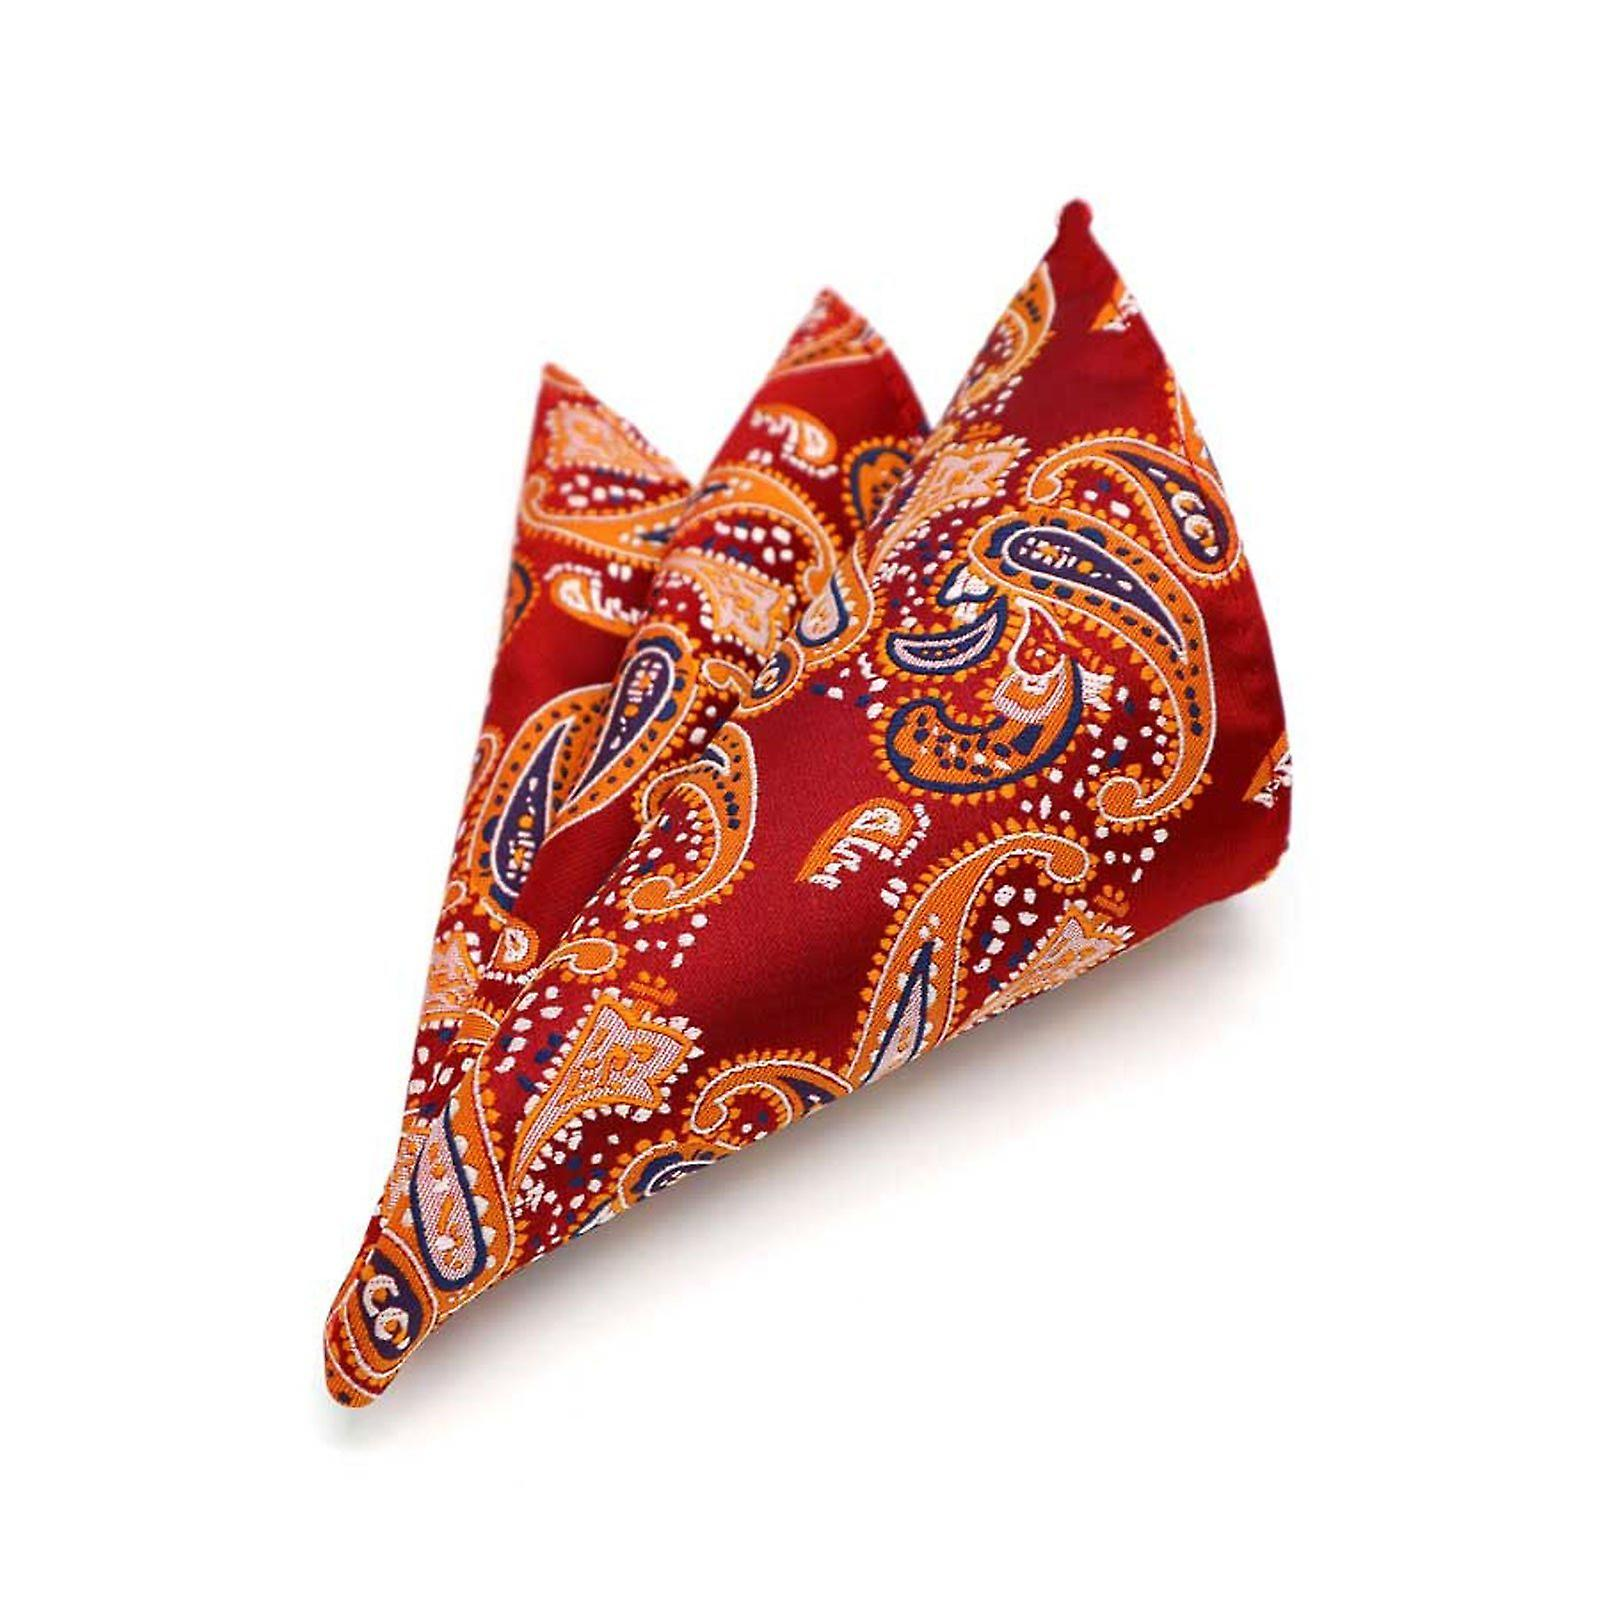 Strawberry red orange & blue paisley pocket square